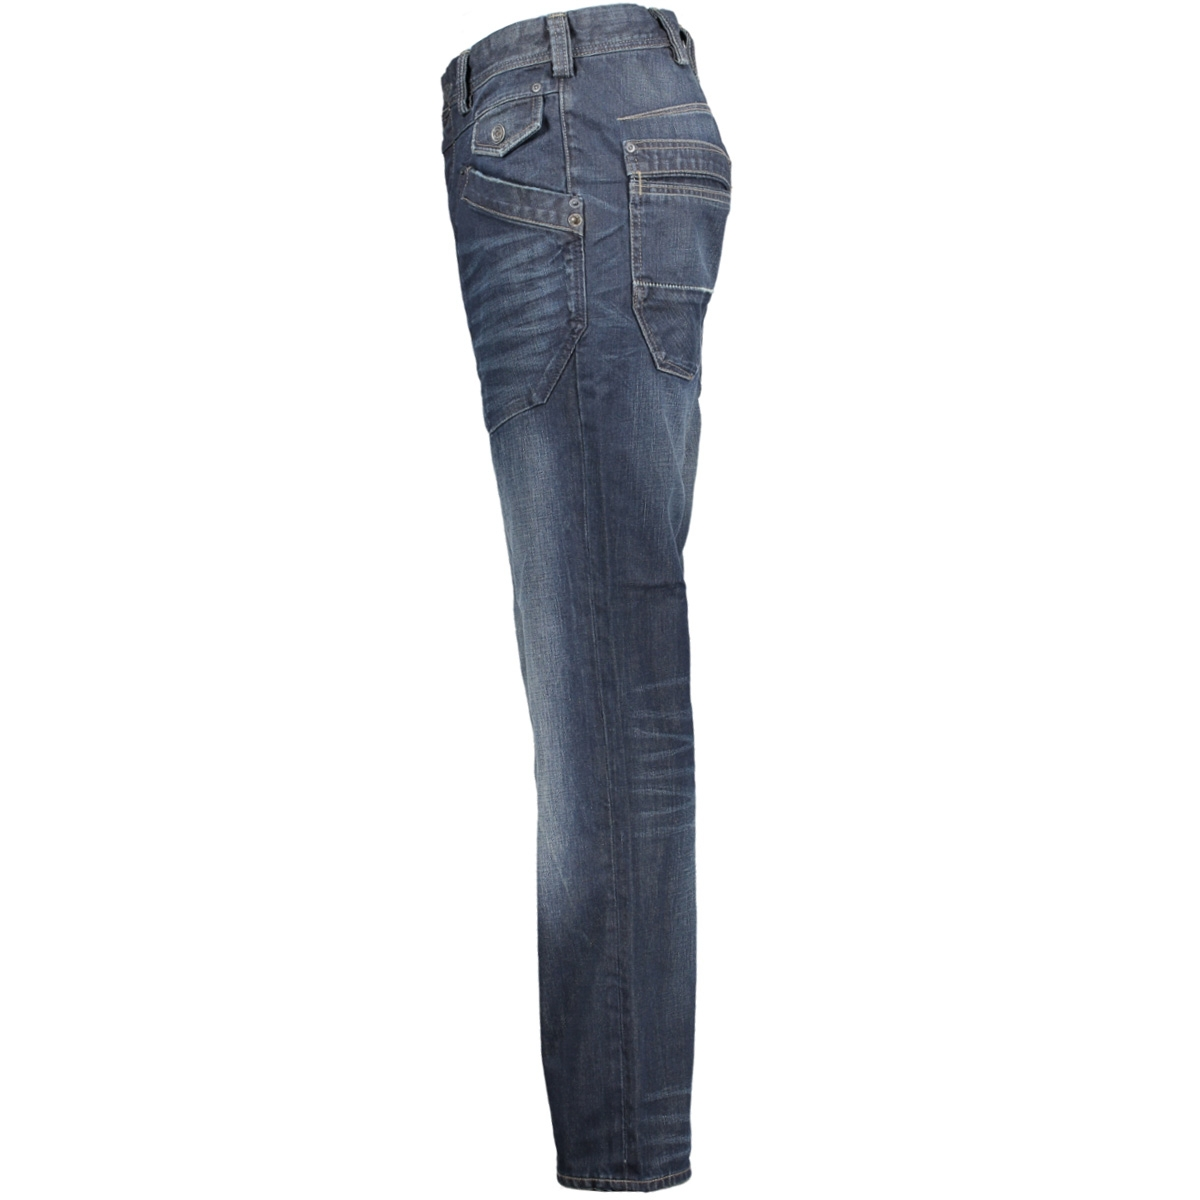 aviator dark indigo wash ptr990 pme legend jeans dig